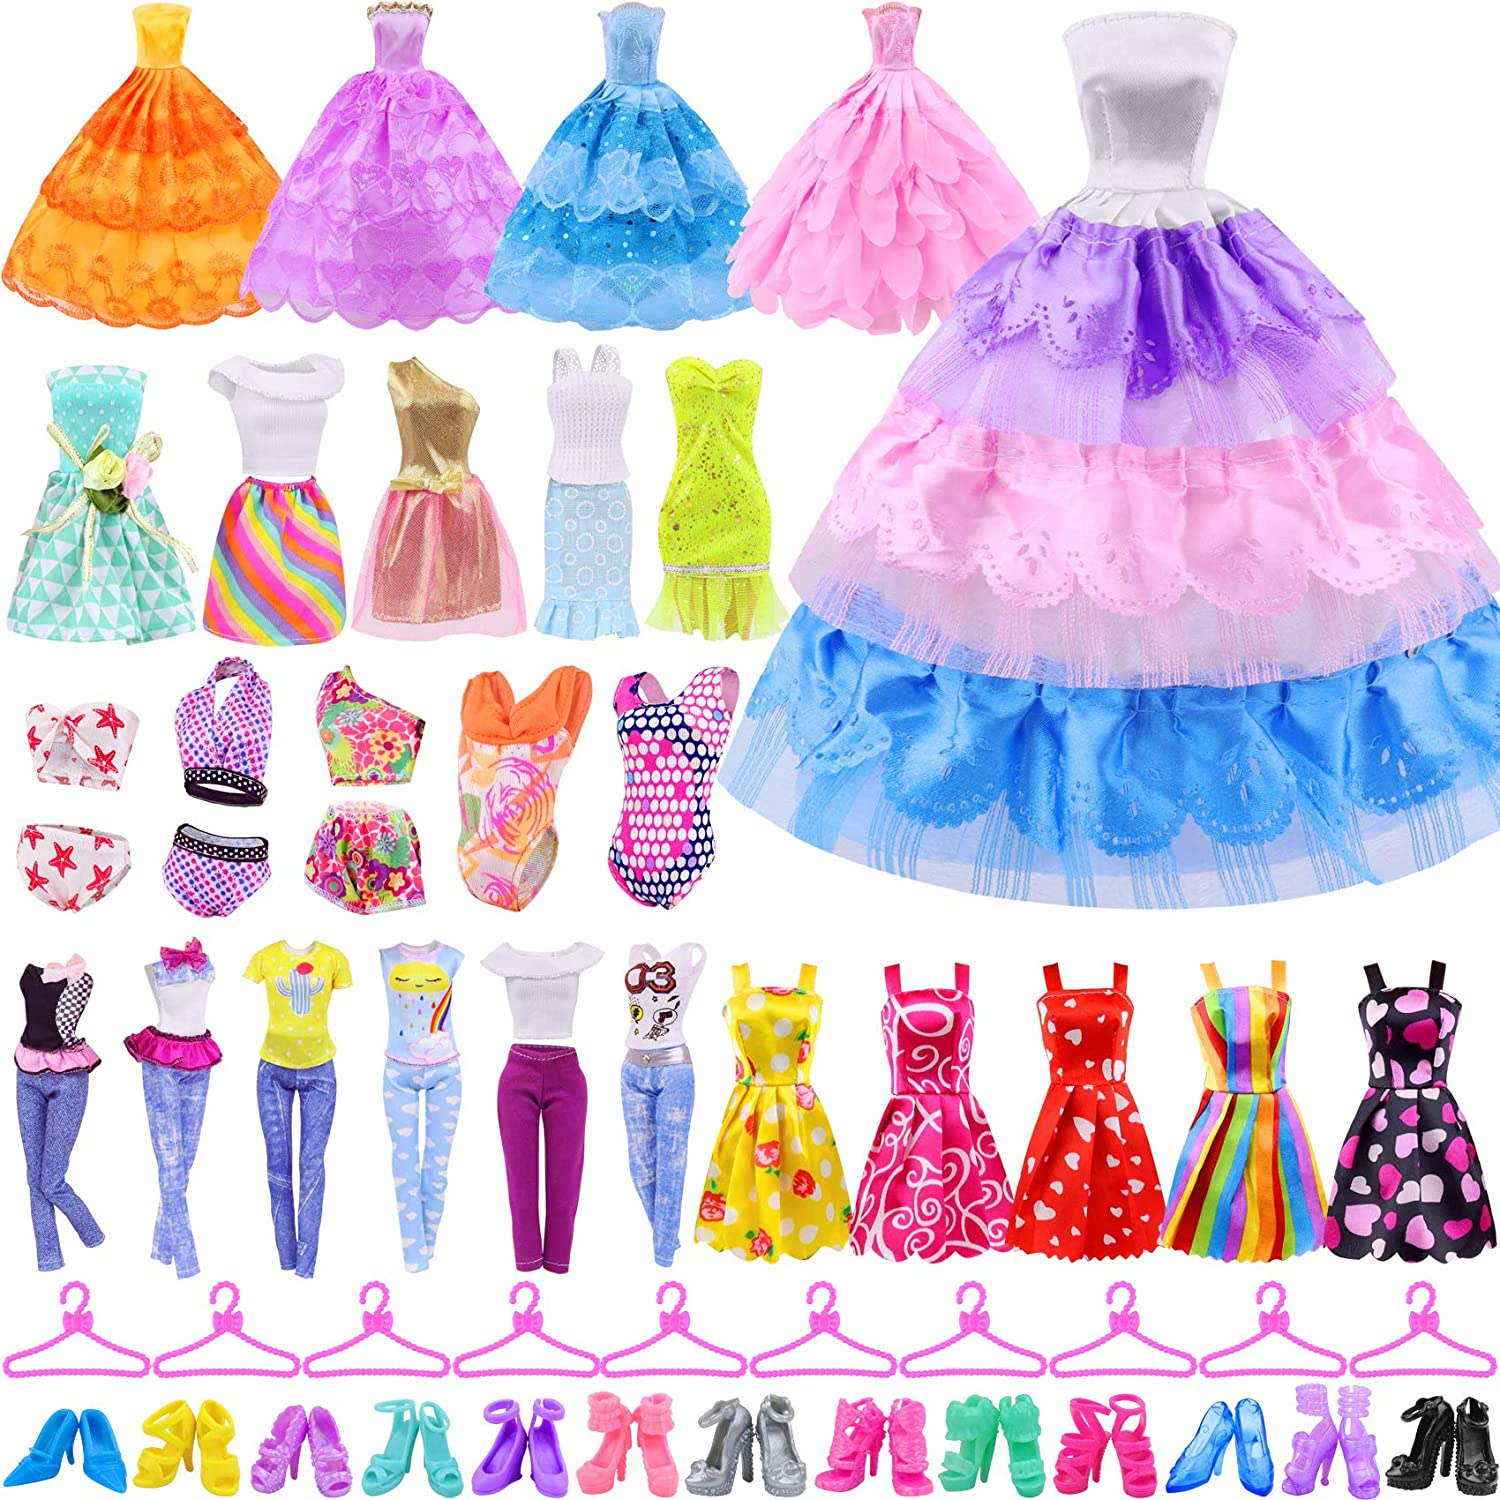 Ecore Fun 41 Don't miss the campaign PCS Doll Clothes 5 Accessories Fashio Long-awaited and Dresses